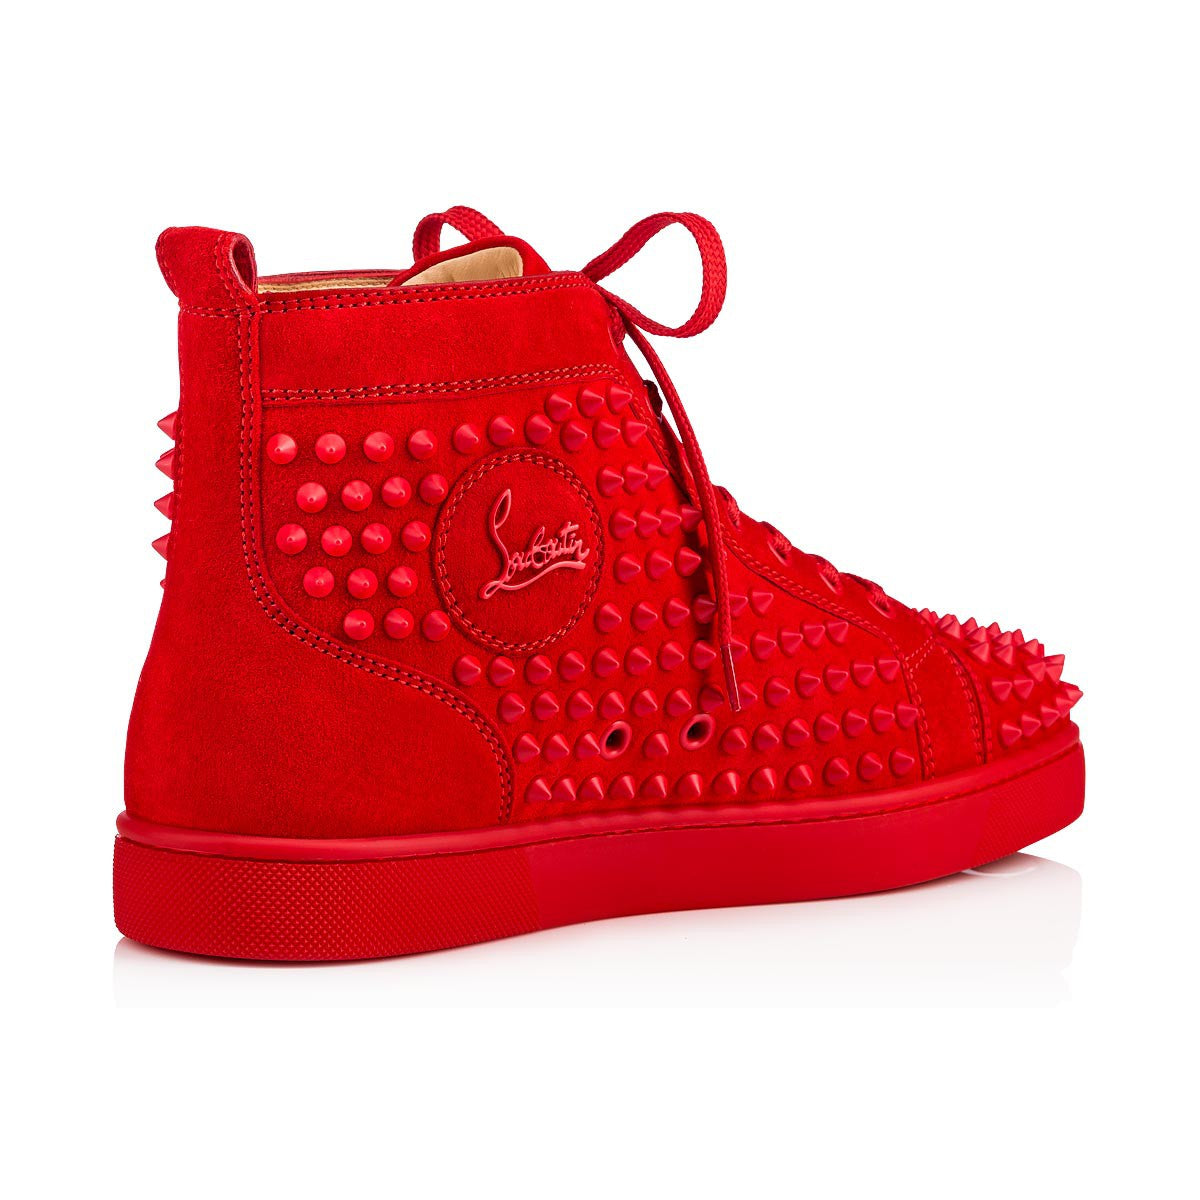 b2603120e65 Red Suede High Top Louboutin Sneakers – Antigua fashion